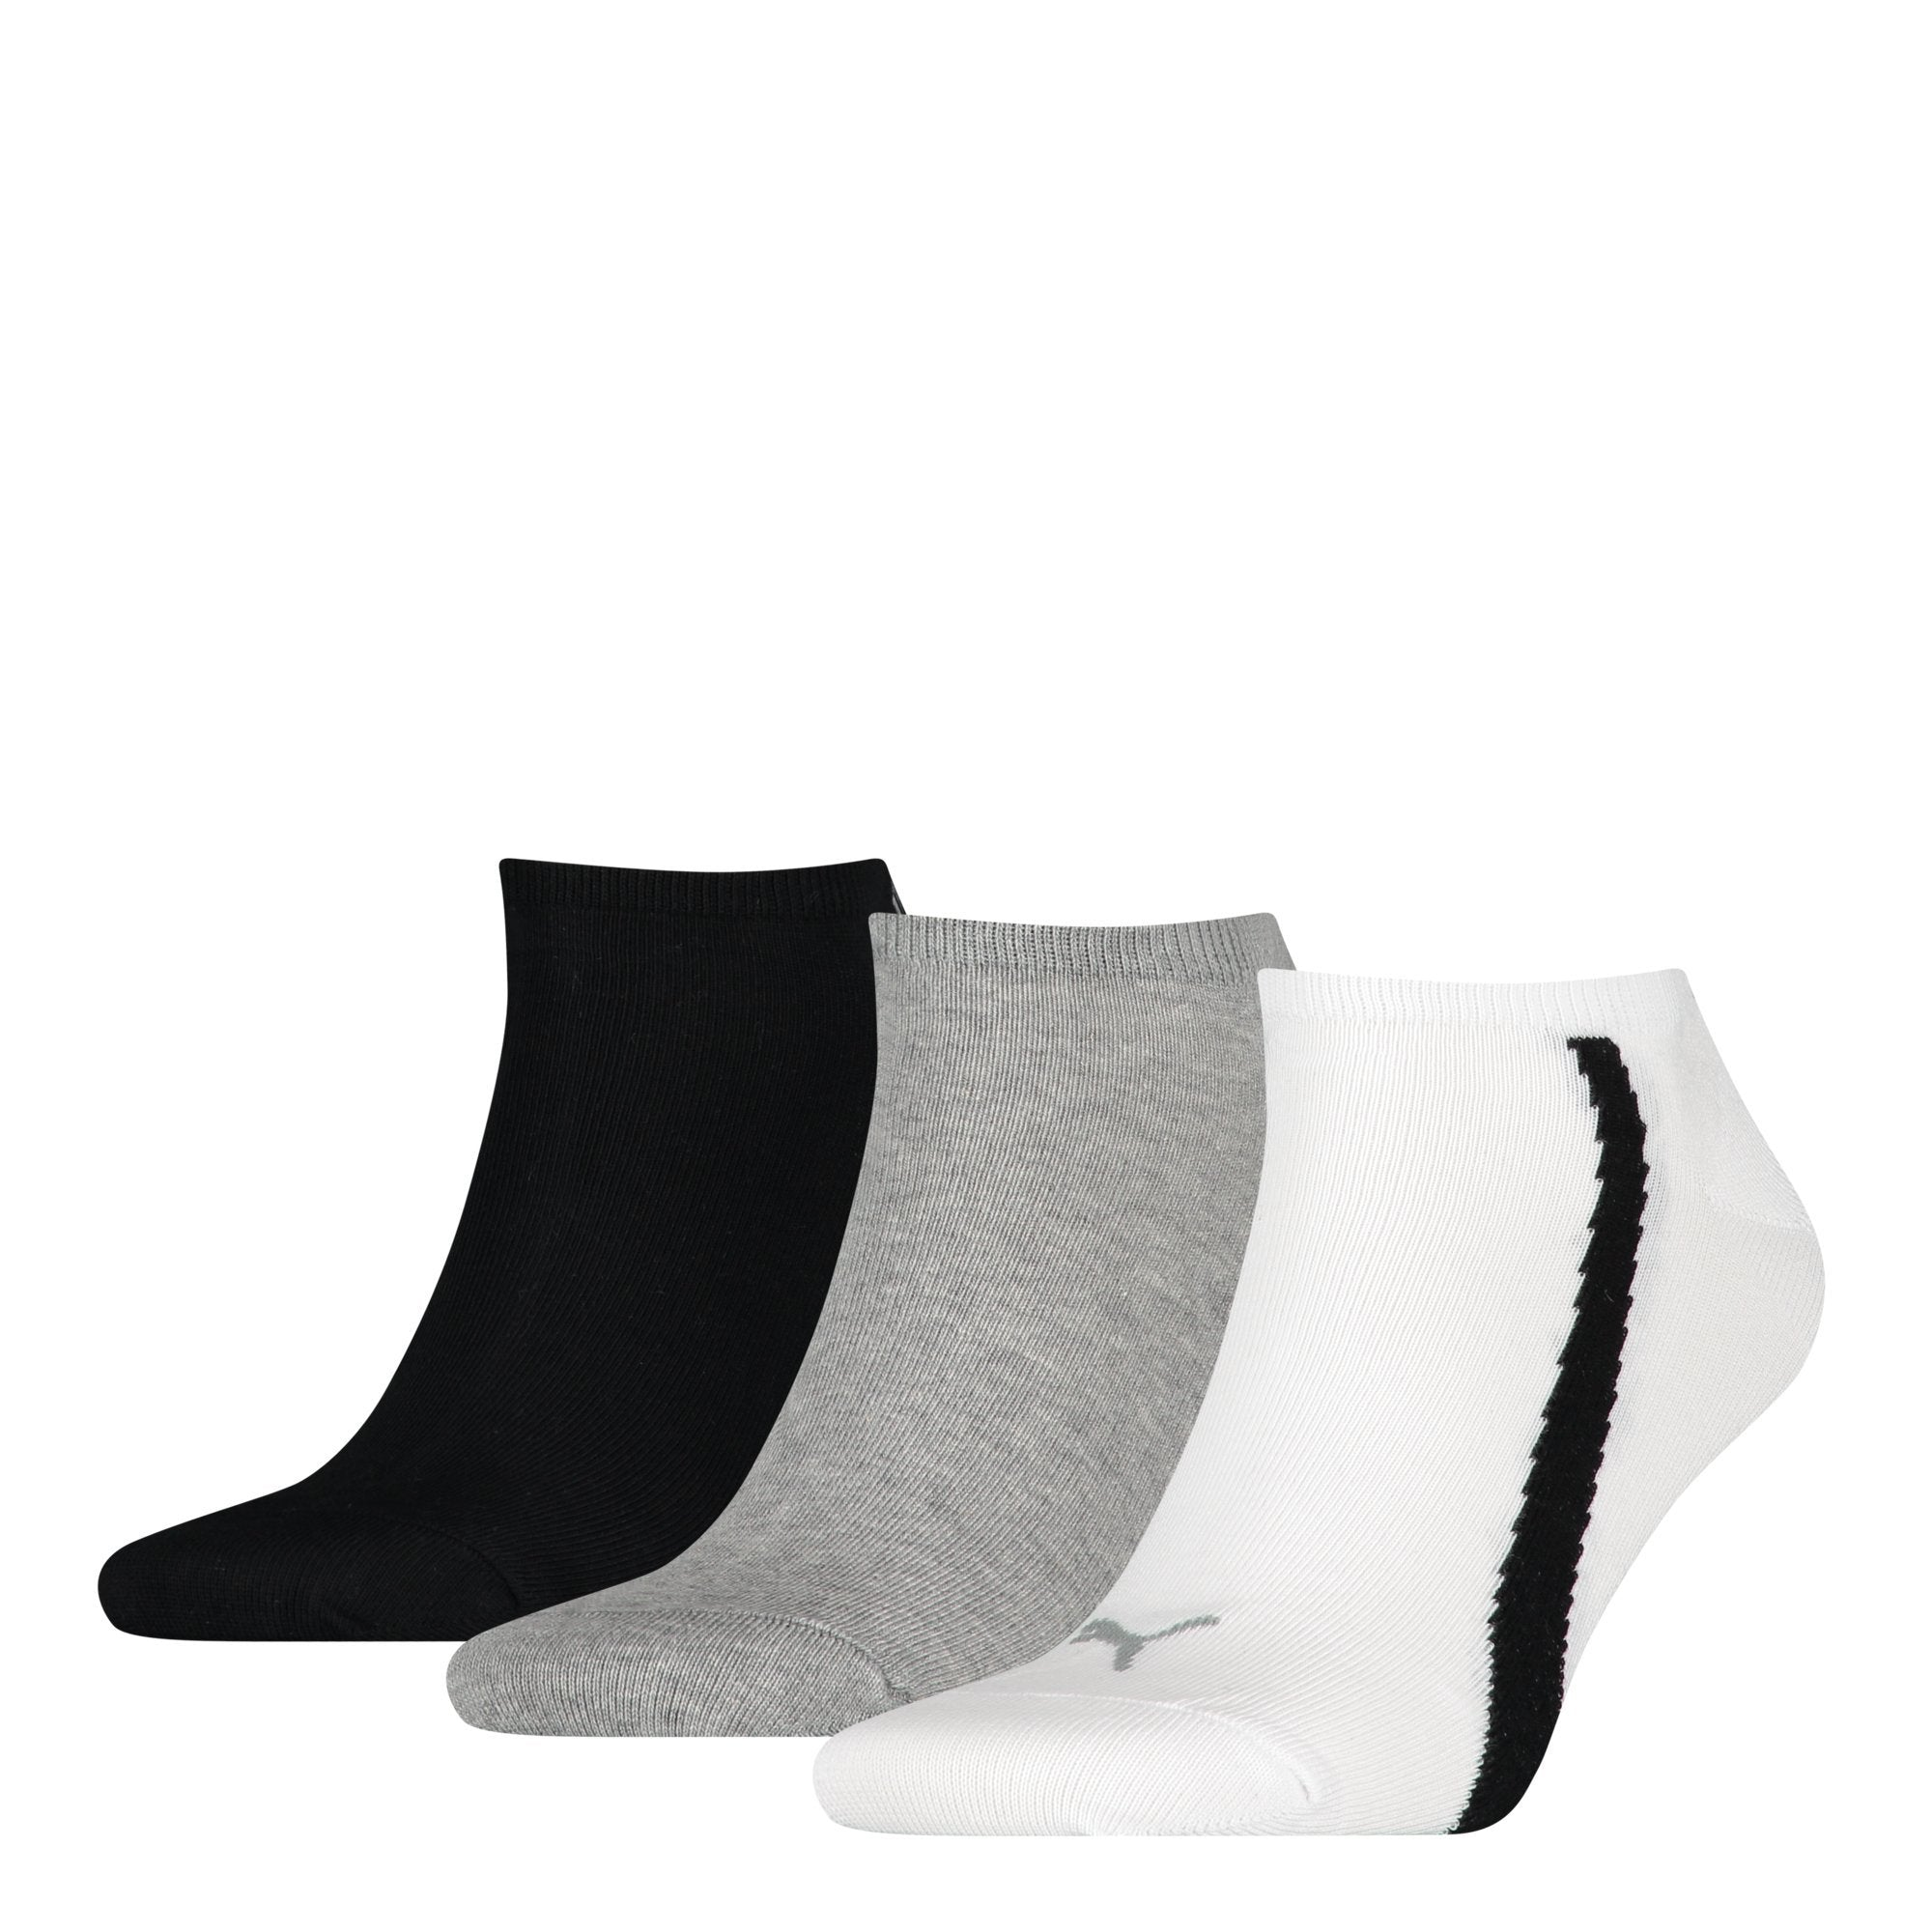 Puma Unisex Lifestyle Sneakers 3P - White / Grey / Black SP-Accessories-Socks Puma